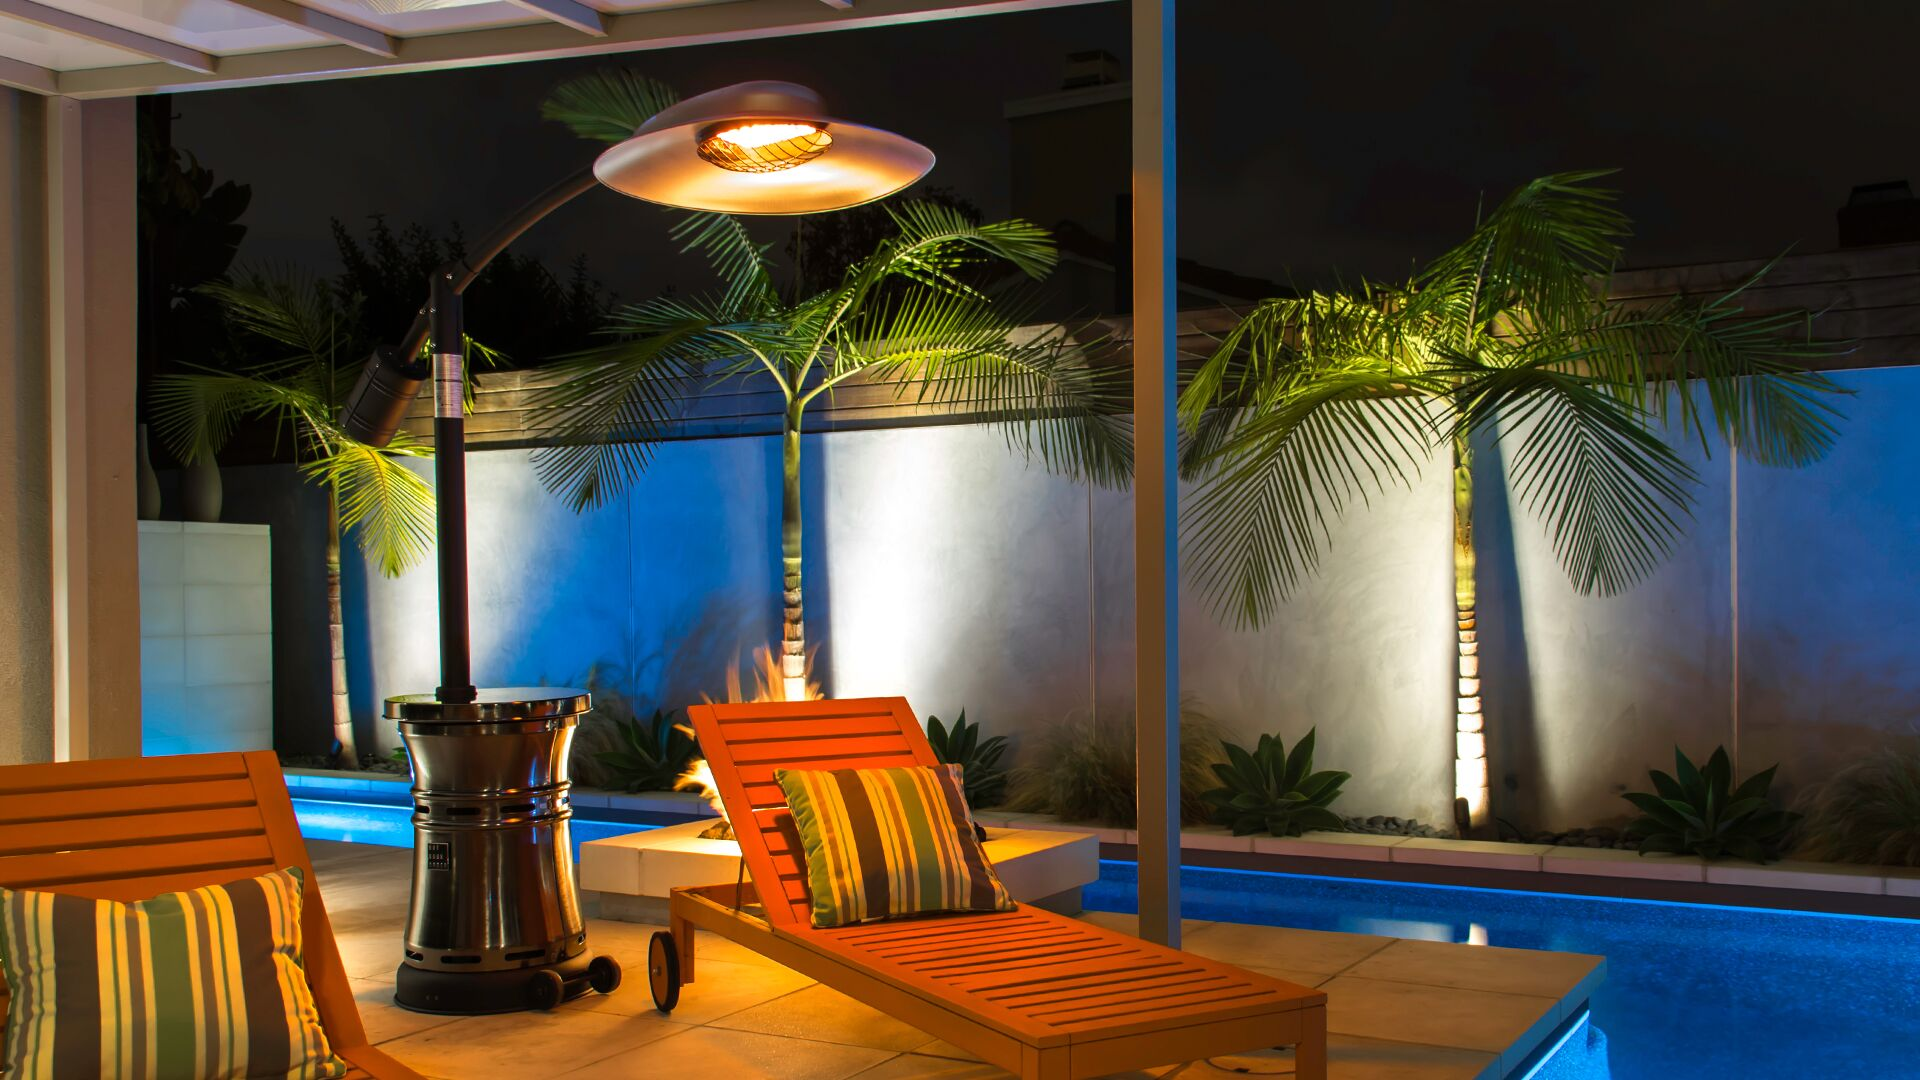 Brooks & Collier, Outdoor Order, Outdoor heaters, curve